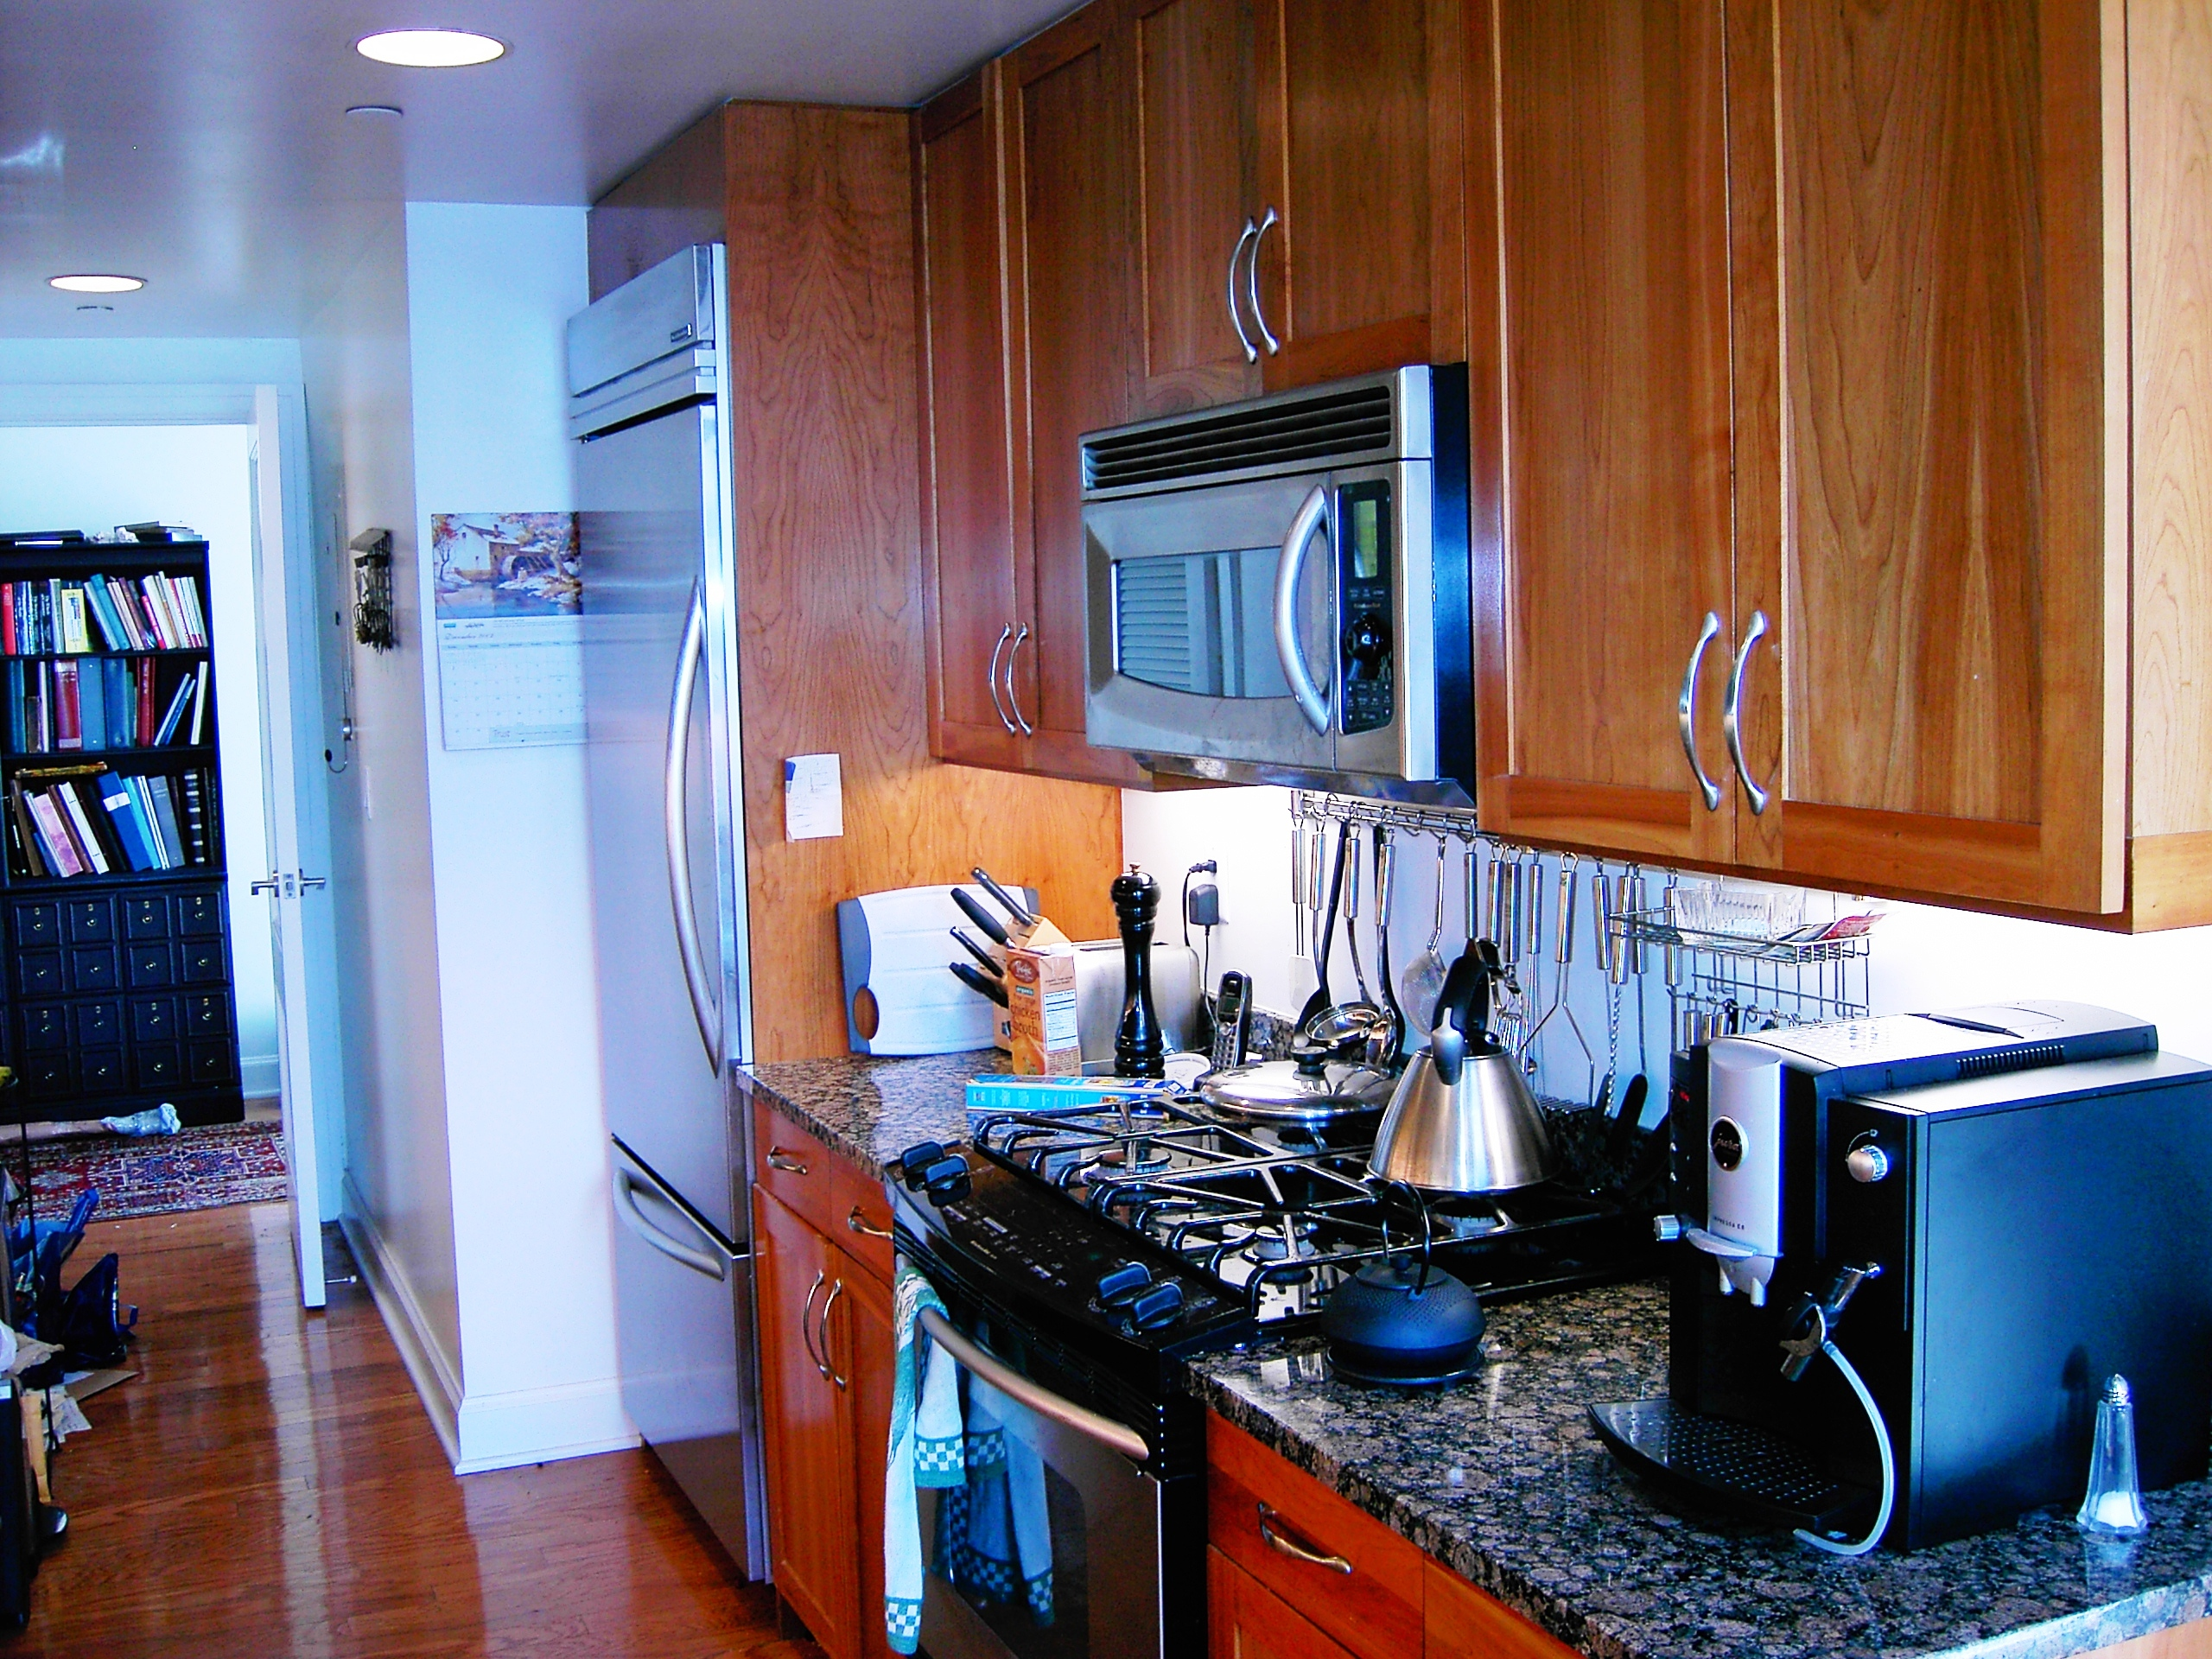 nyc kitchen remodeling custom cabinets design new york city brooklyn